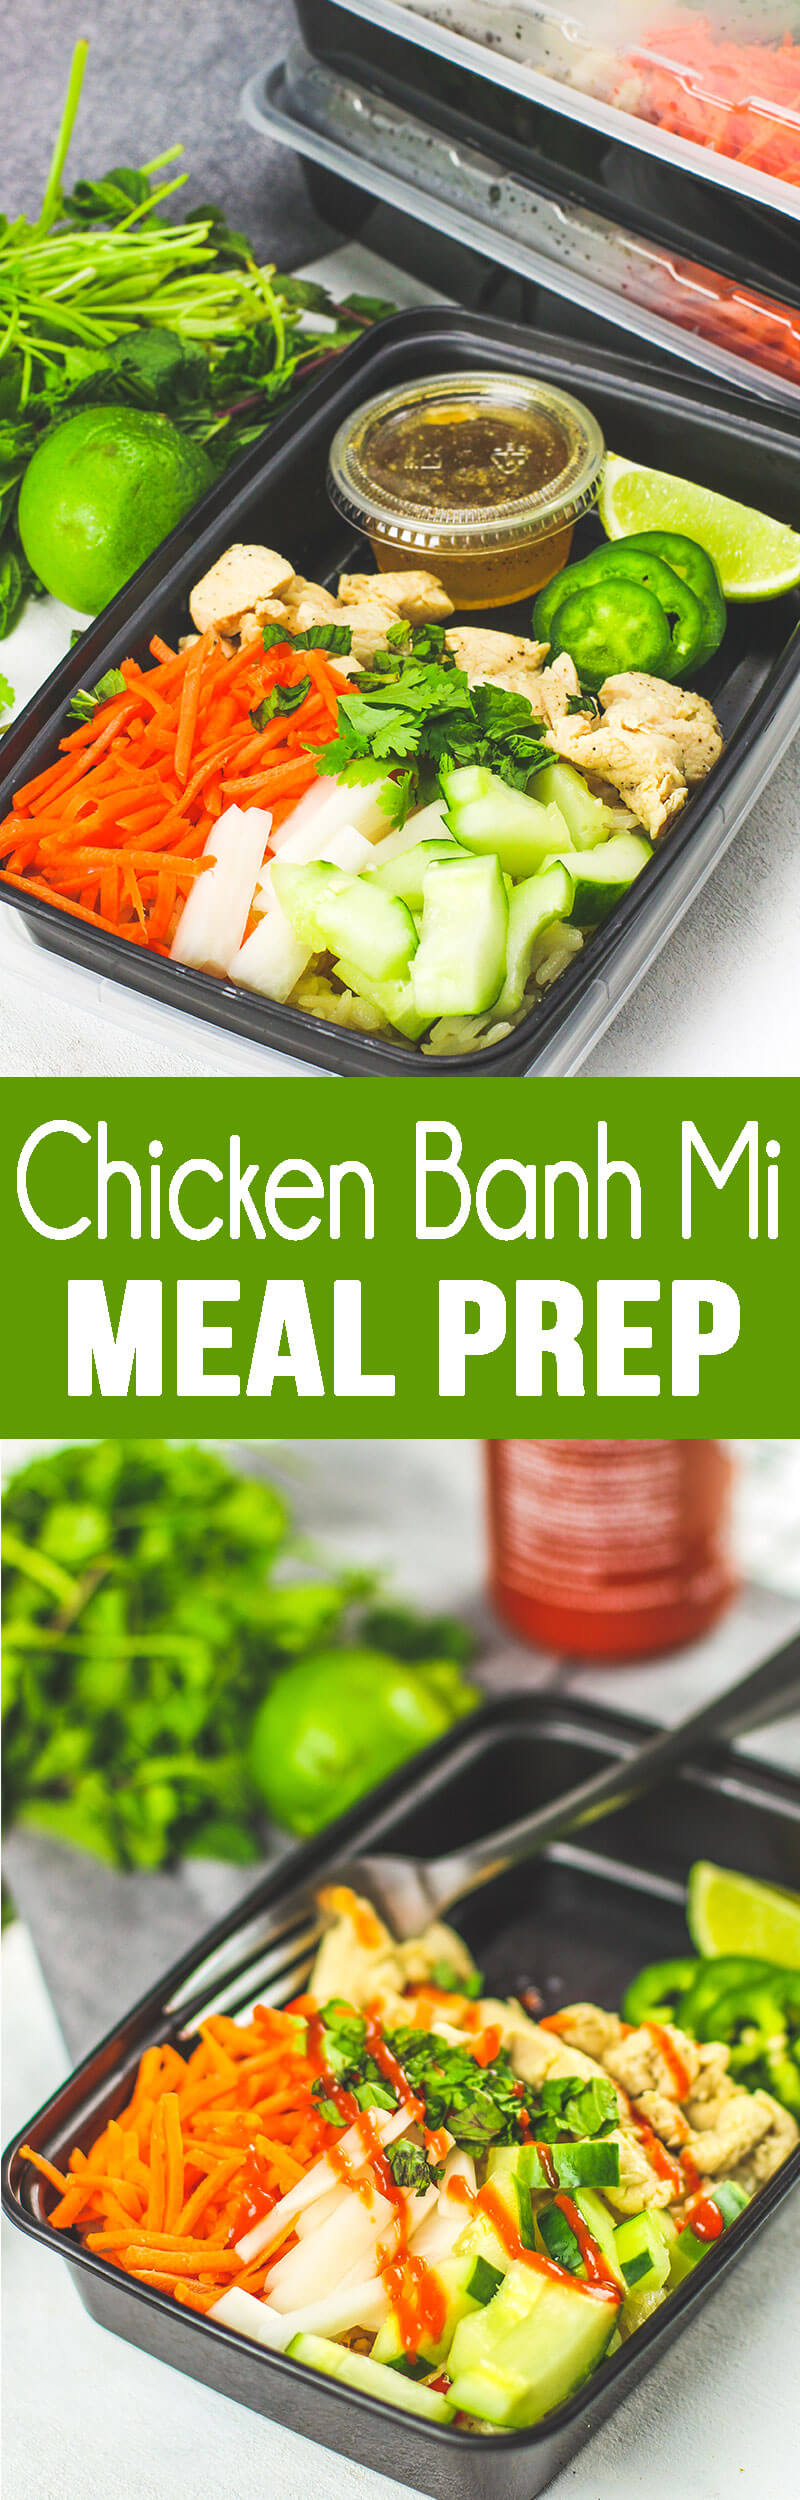 Chicken Banh Mi Meal Prep